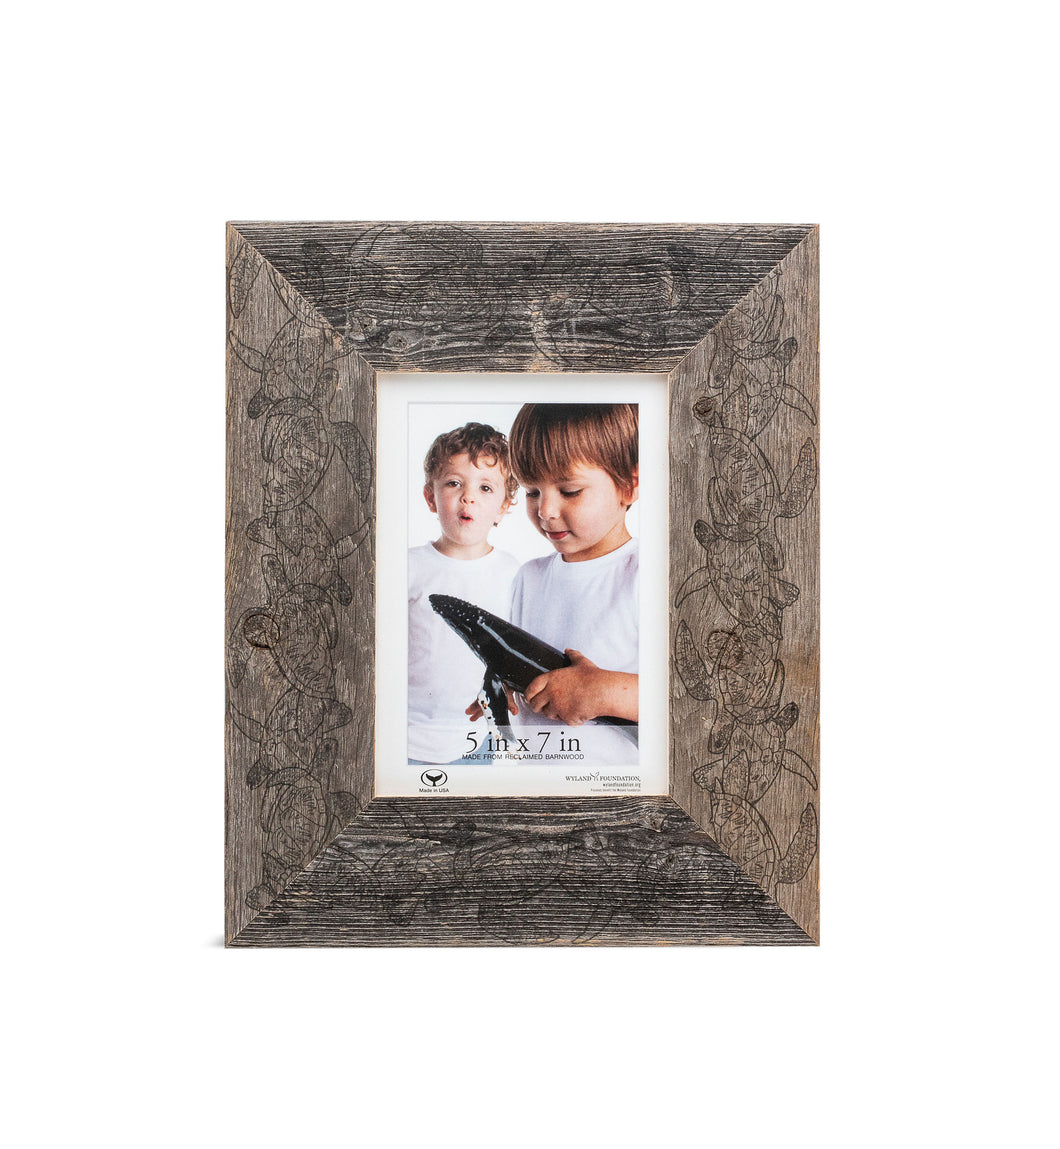 Sea Turtle Migration Medium Picture Frame / for 5